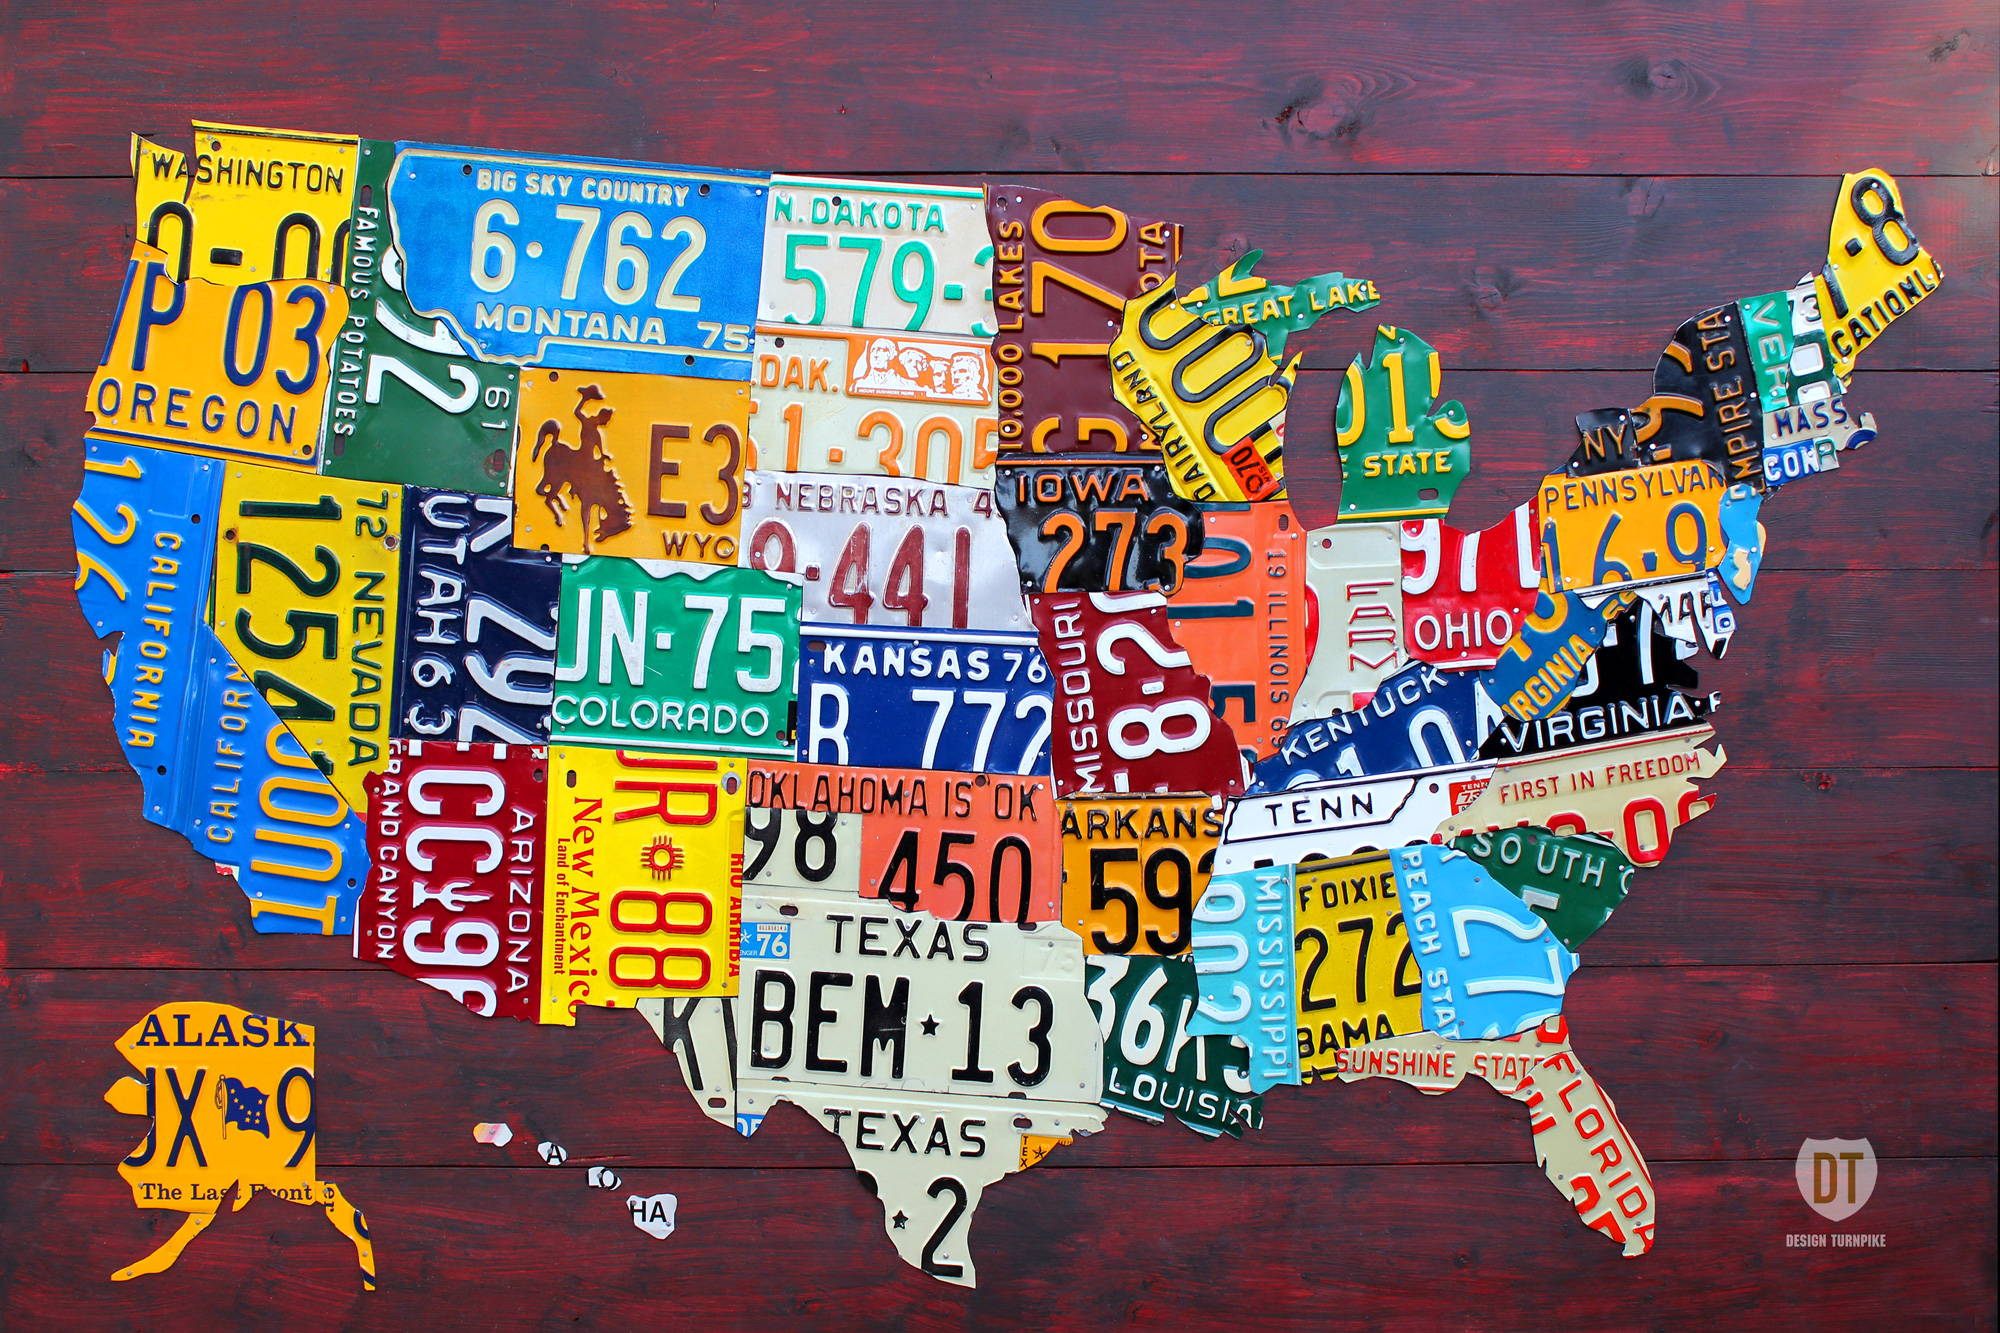 The US States How Many Have You Been To - Us states traveled map